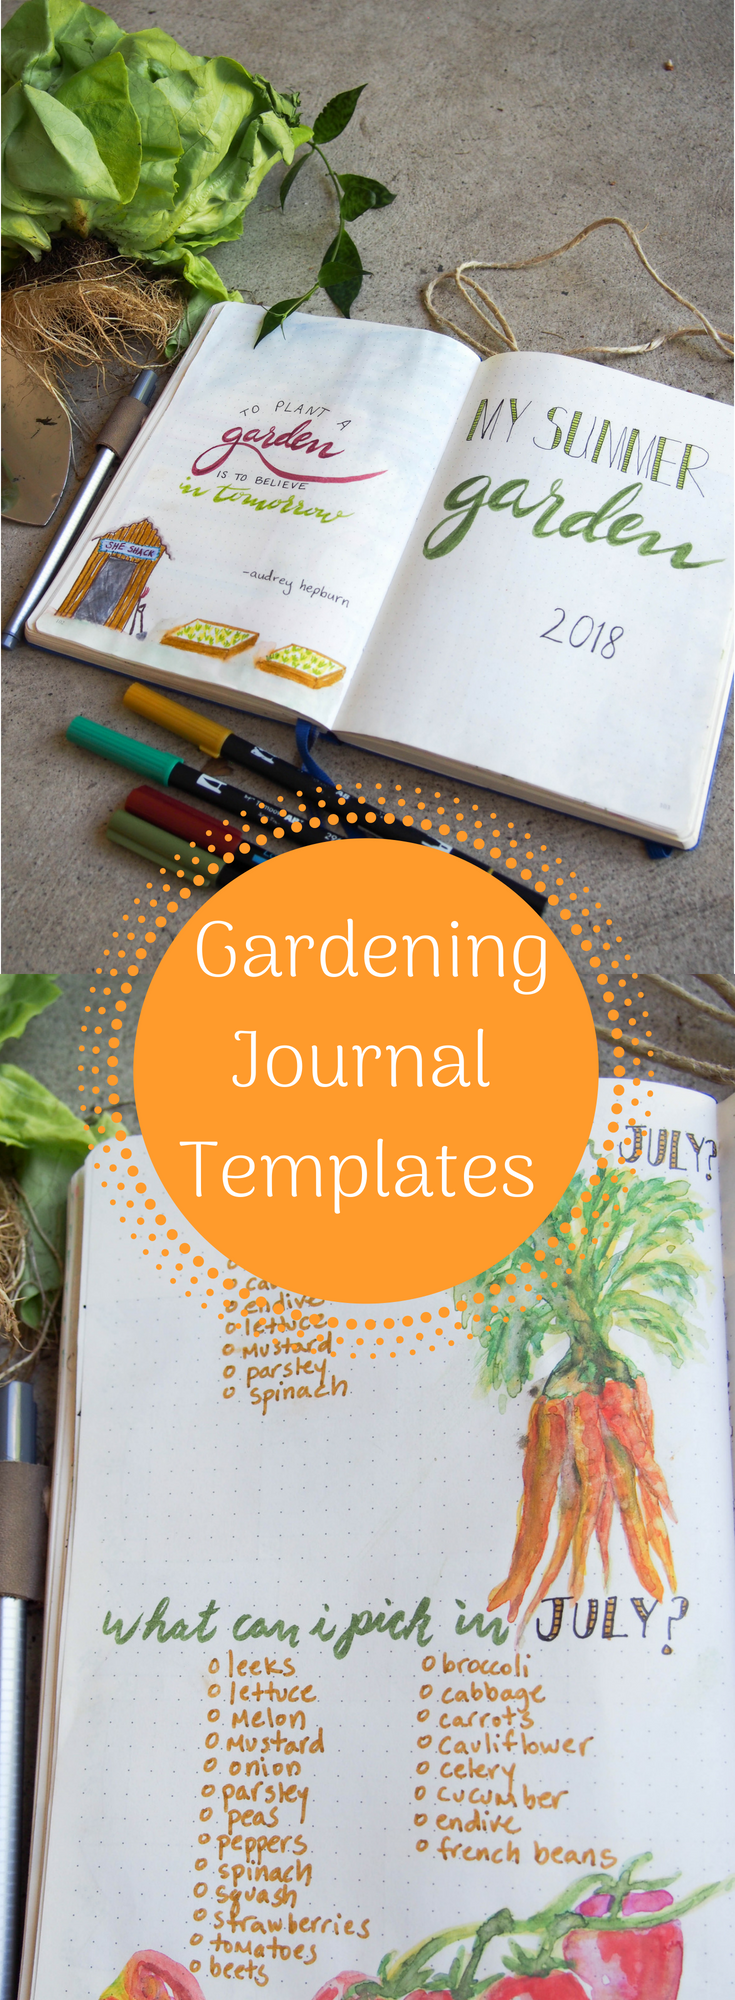 Spruce Up Your Gardening Journal With Our Free Bullet Journal Templates It S So Easy Just In 2020 Garden Journal Garden Journal Template Gardening Journal Printables